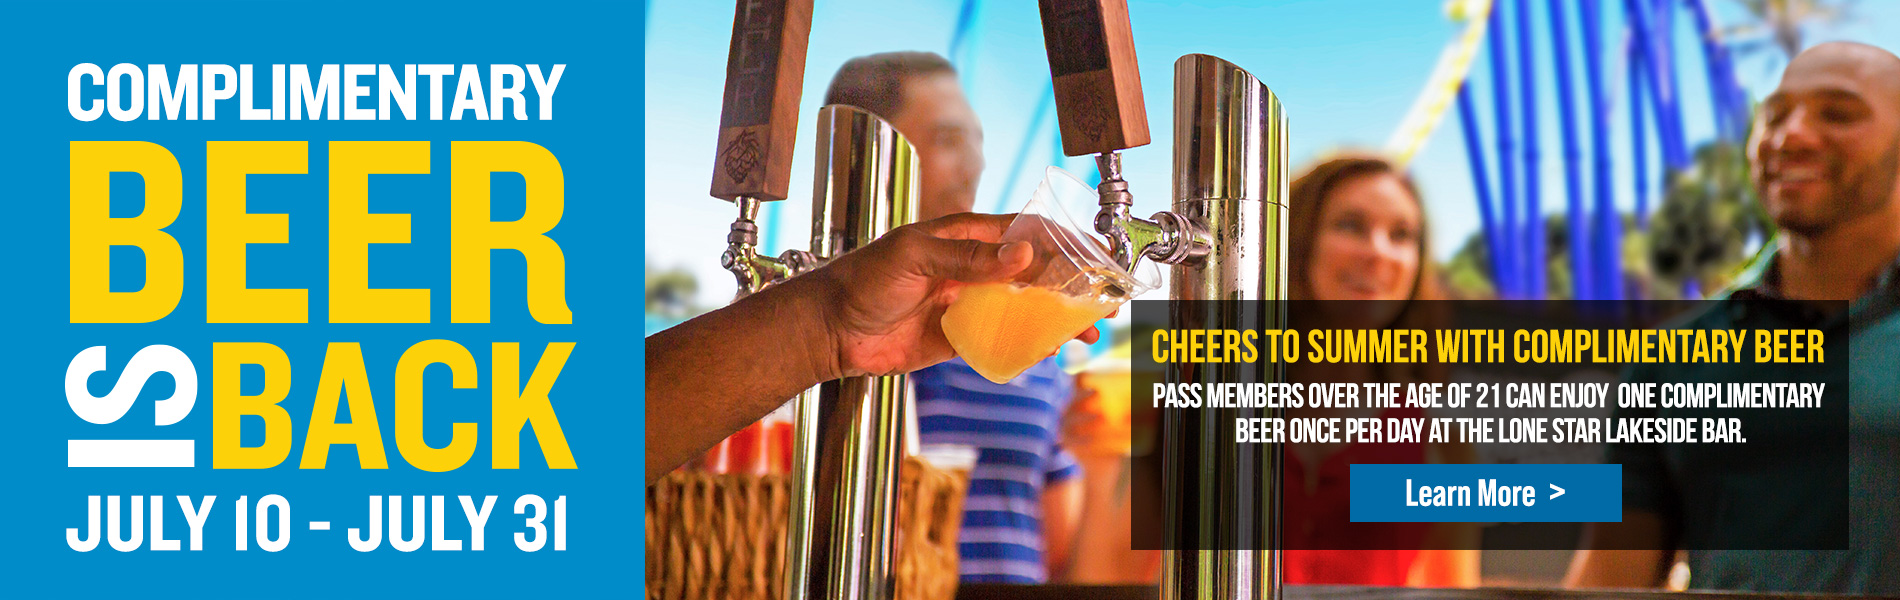 Complimentary Beer is Back